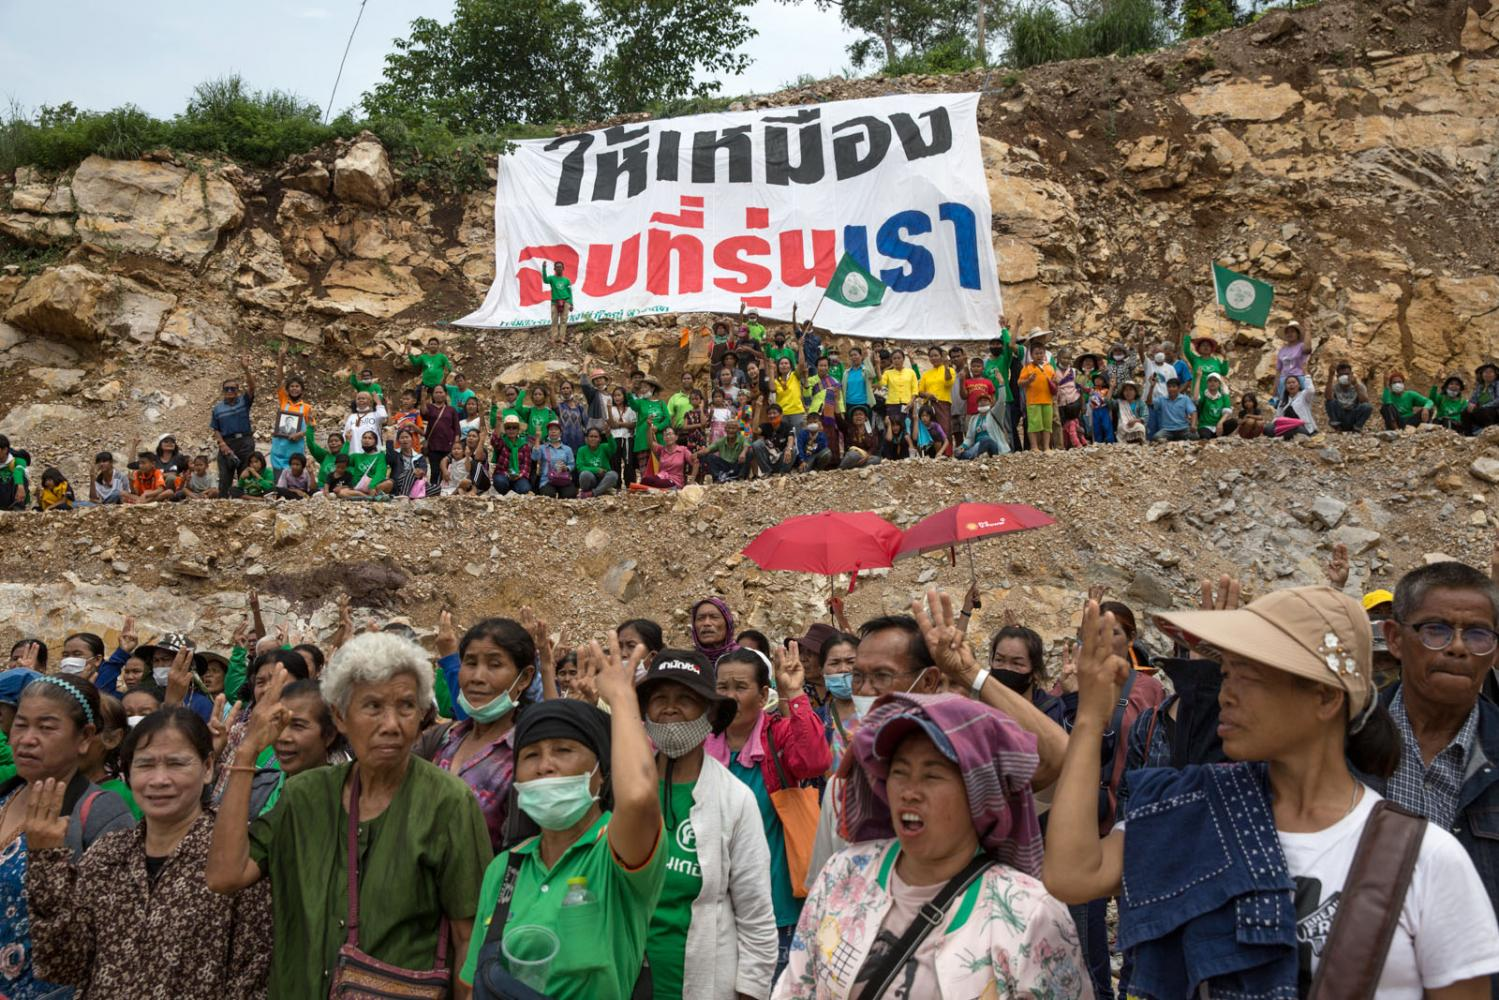 An anti-mining community celebrate their 're-taking' of a stone mine after 3 decades of fighting to close it down. Nong Bua Lam Phu, Thailand.